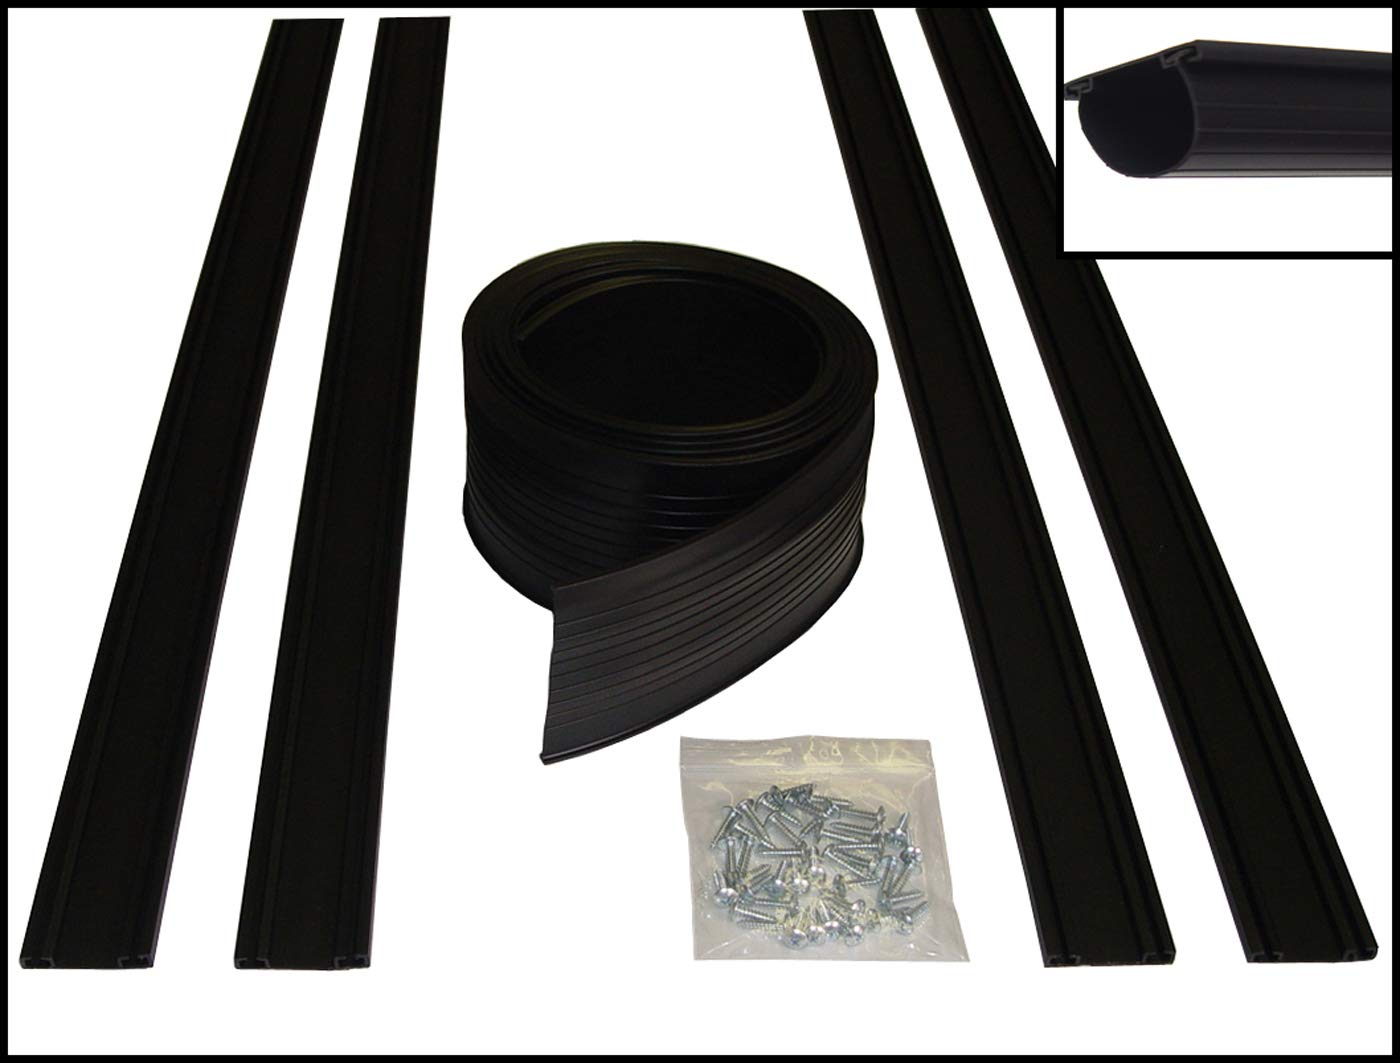 MD Group 18' ProSeal U-Shaped Garage Door Bottom Seal Kit by Auto Care Products, 1.5'' x 18'' x 4 lbs